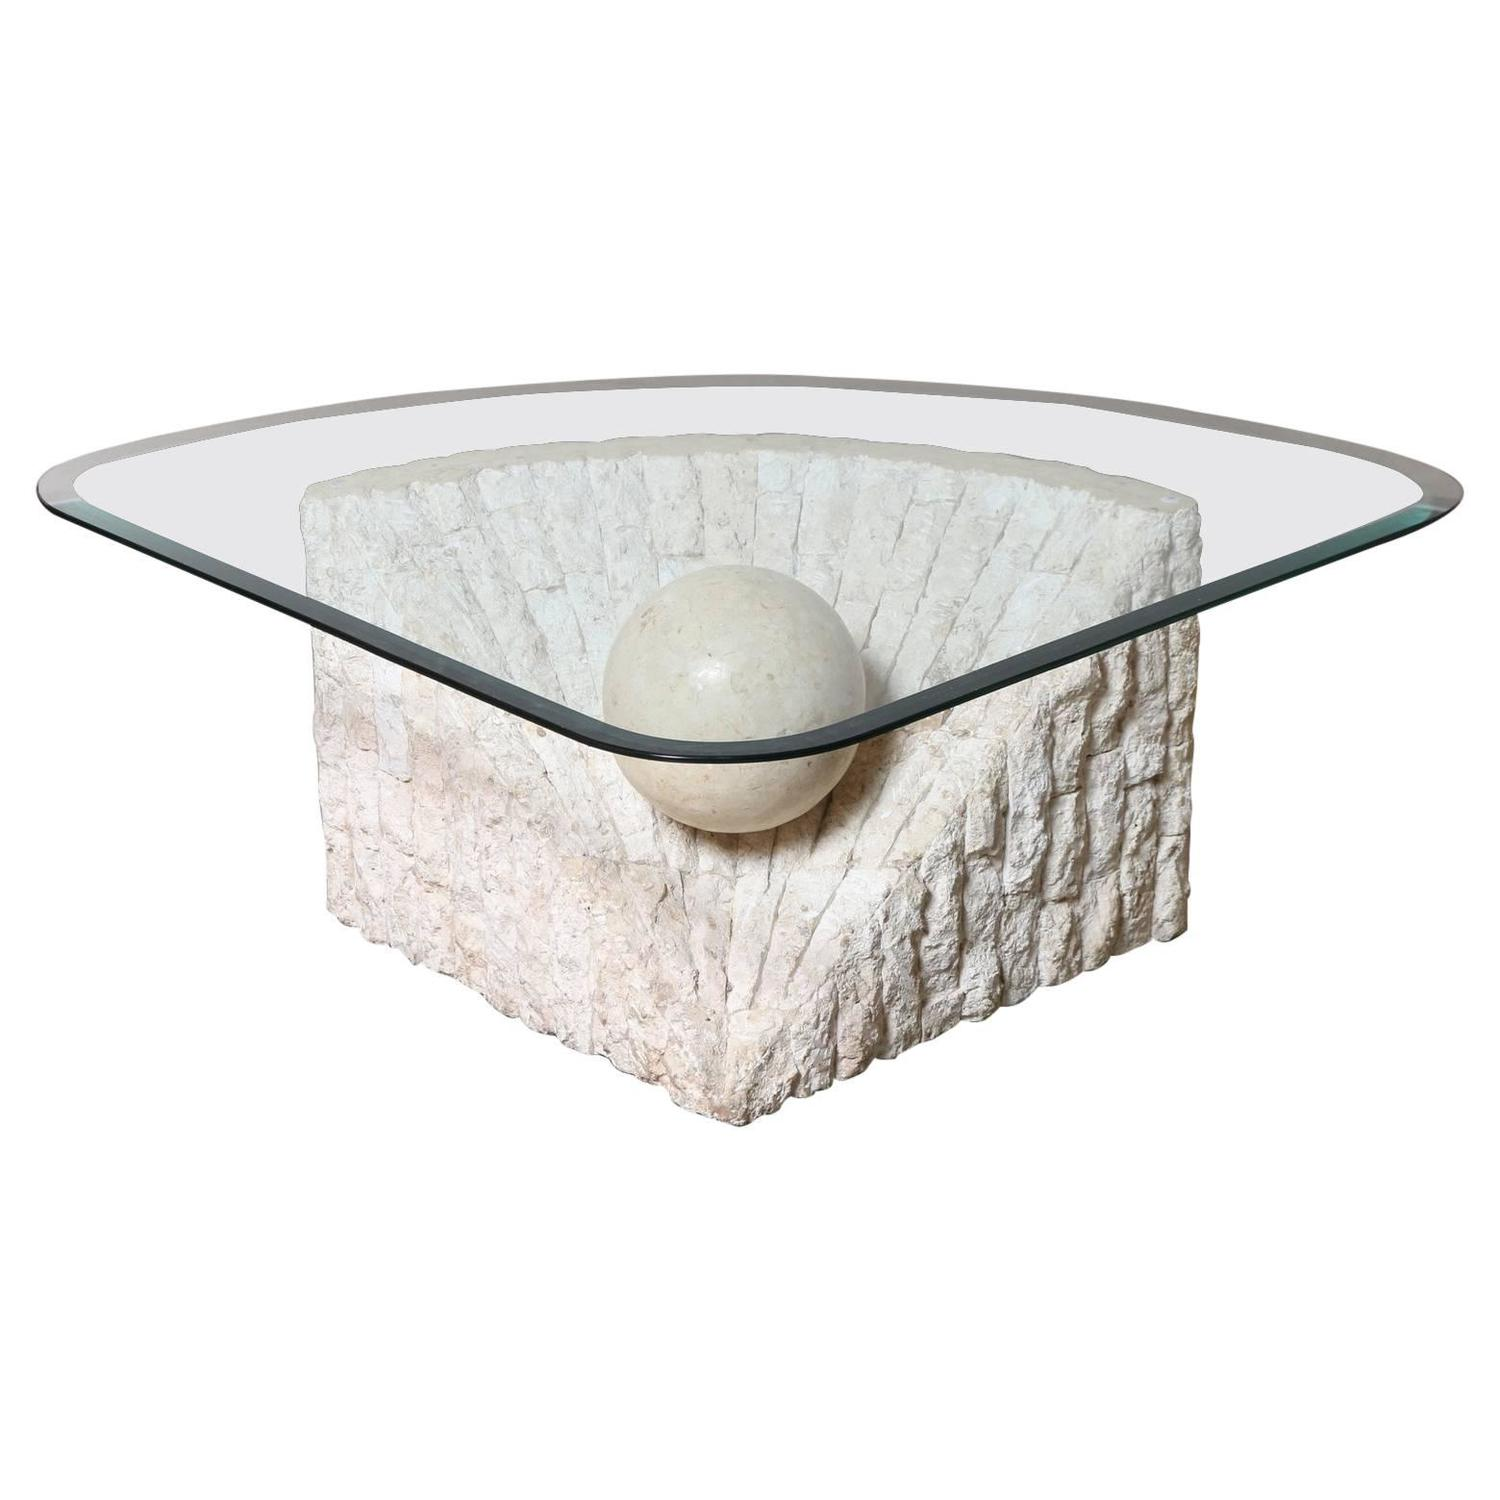 Triangular marble and travertine coffee table with beveled edge glass top at 1stdibs Stone coffee table top